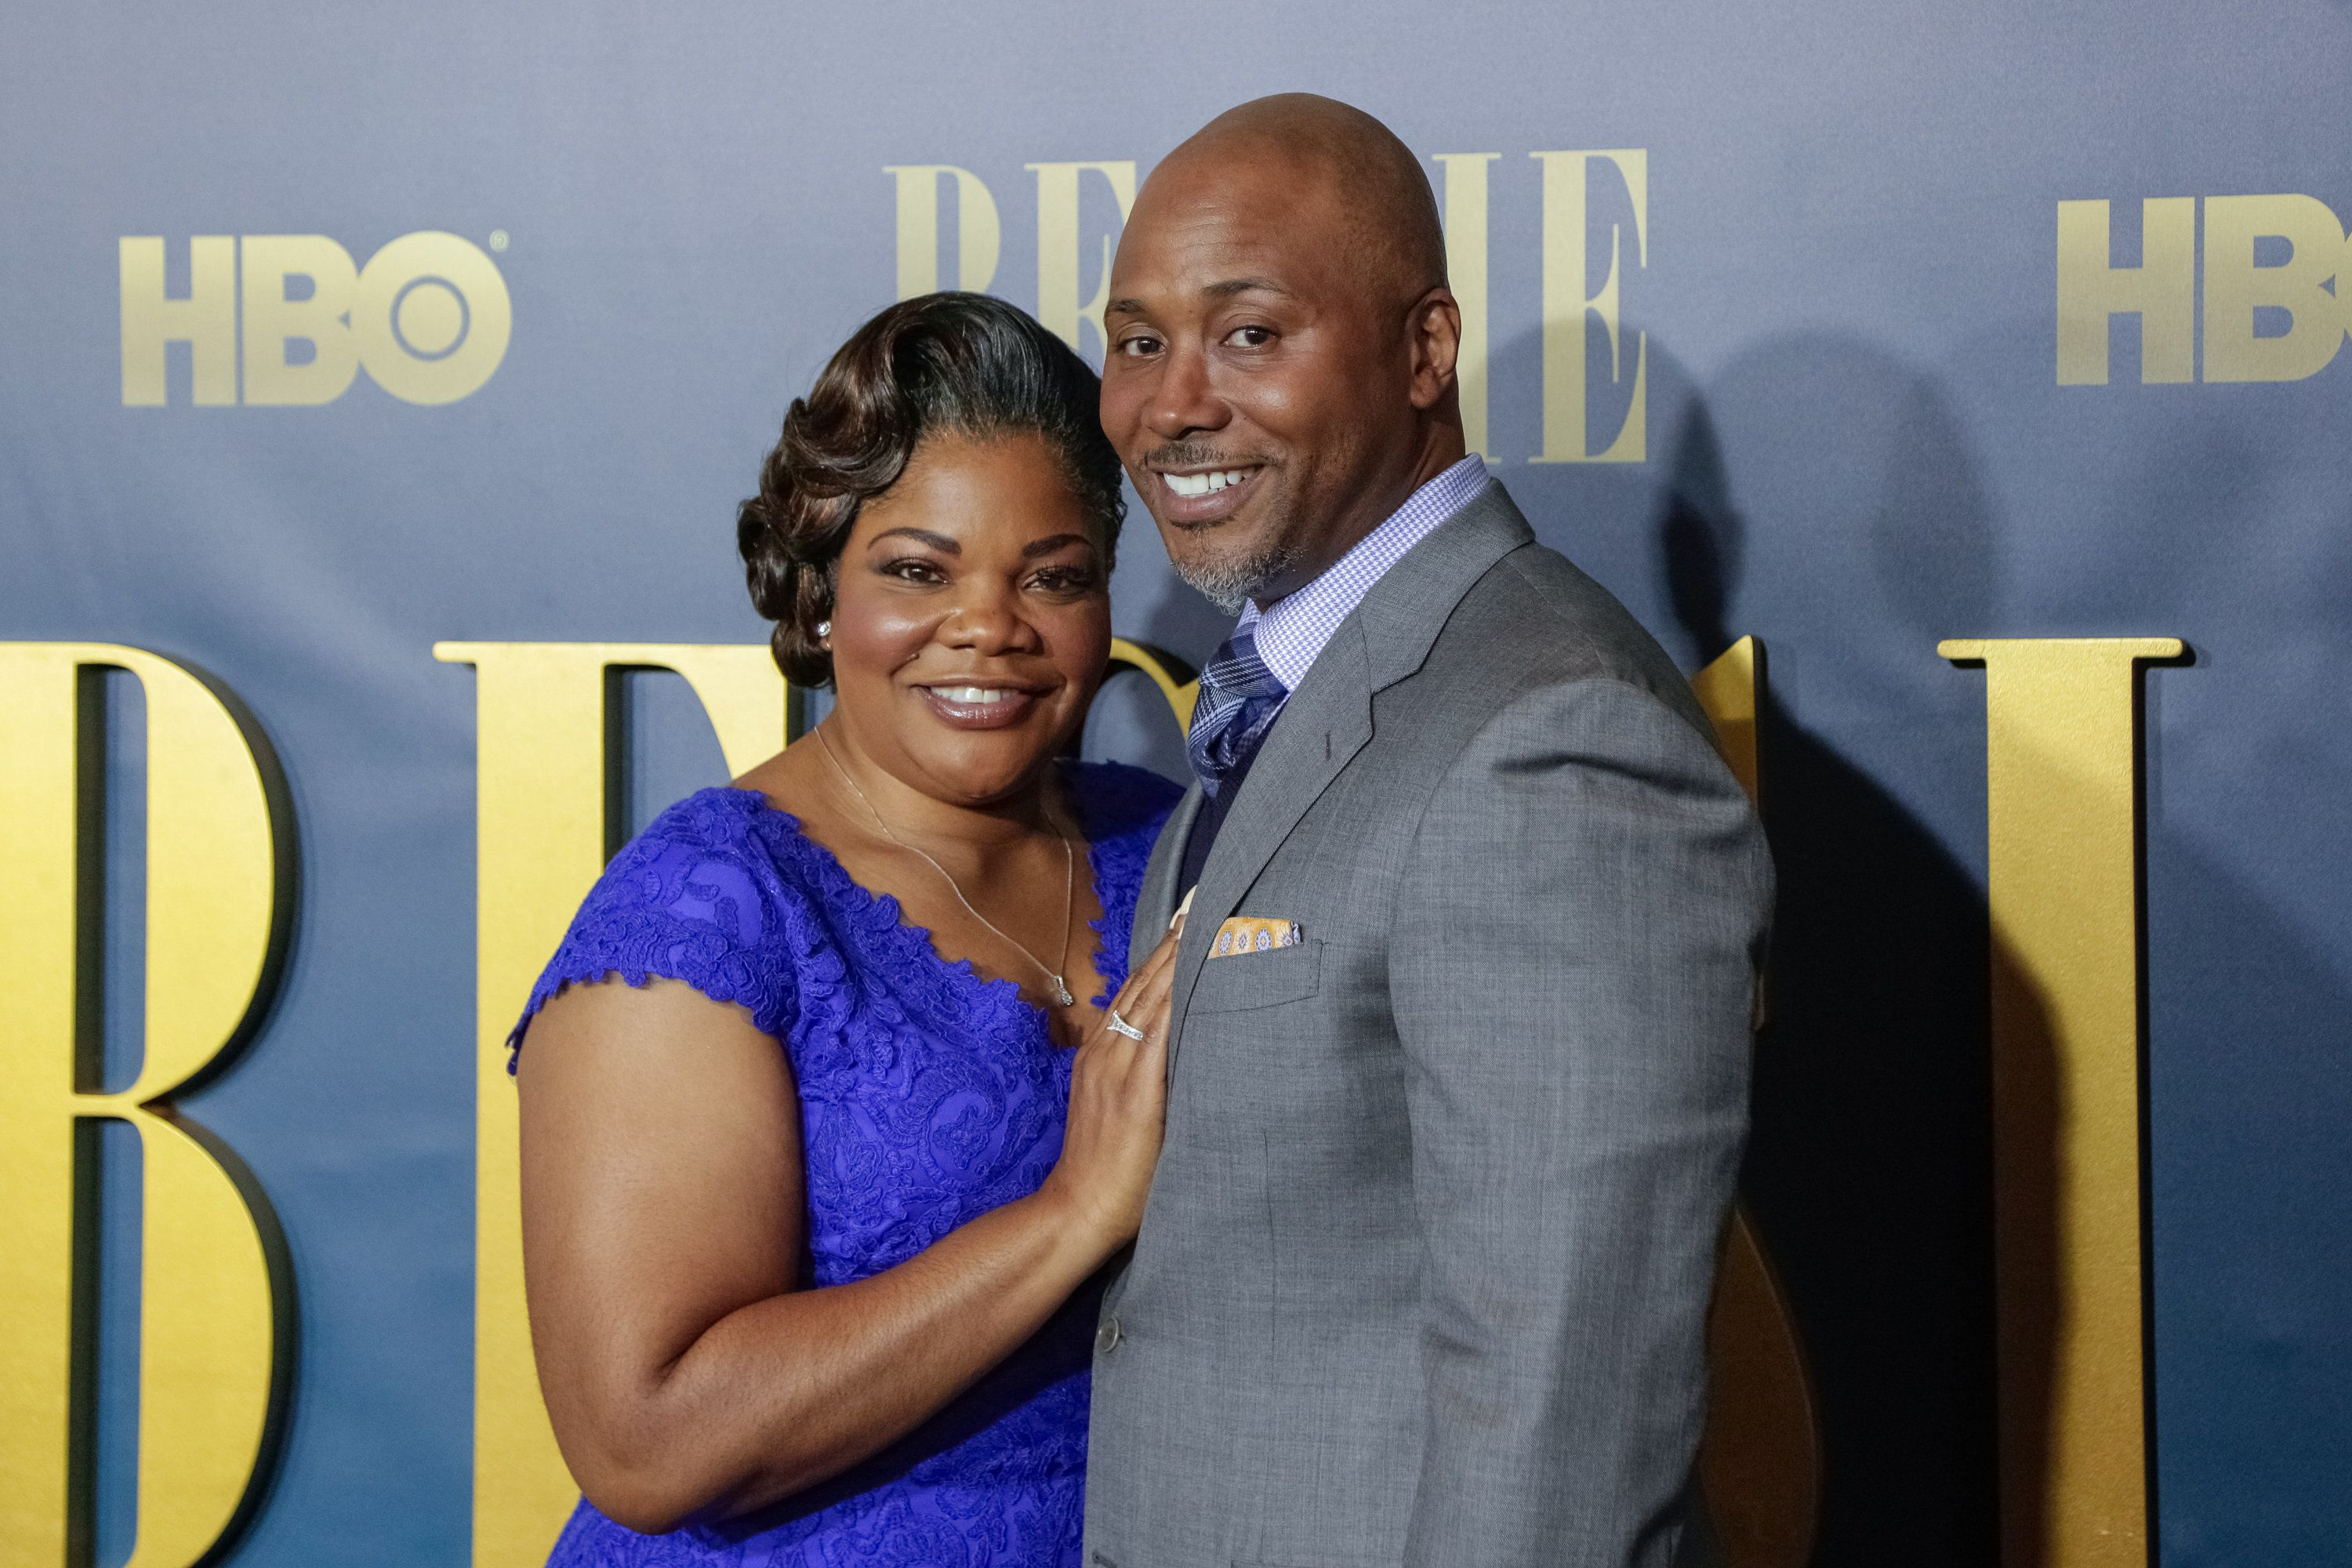 NEW YORK, NY - APRIL 29:  Actress Mo'Nique (L) and husband Sidney Hicks arrive for the New York screening of 'Bessie' held at The Museum of Modern Art on April 29, 2015 in New York City.  (Photo by Brent N. Clarke/FilmMagic)